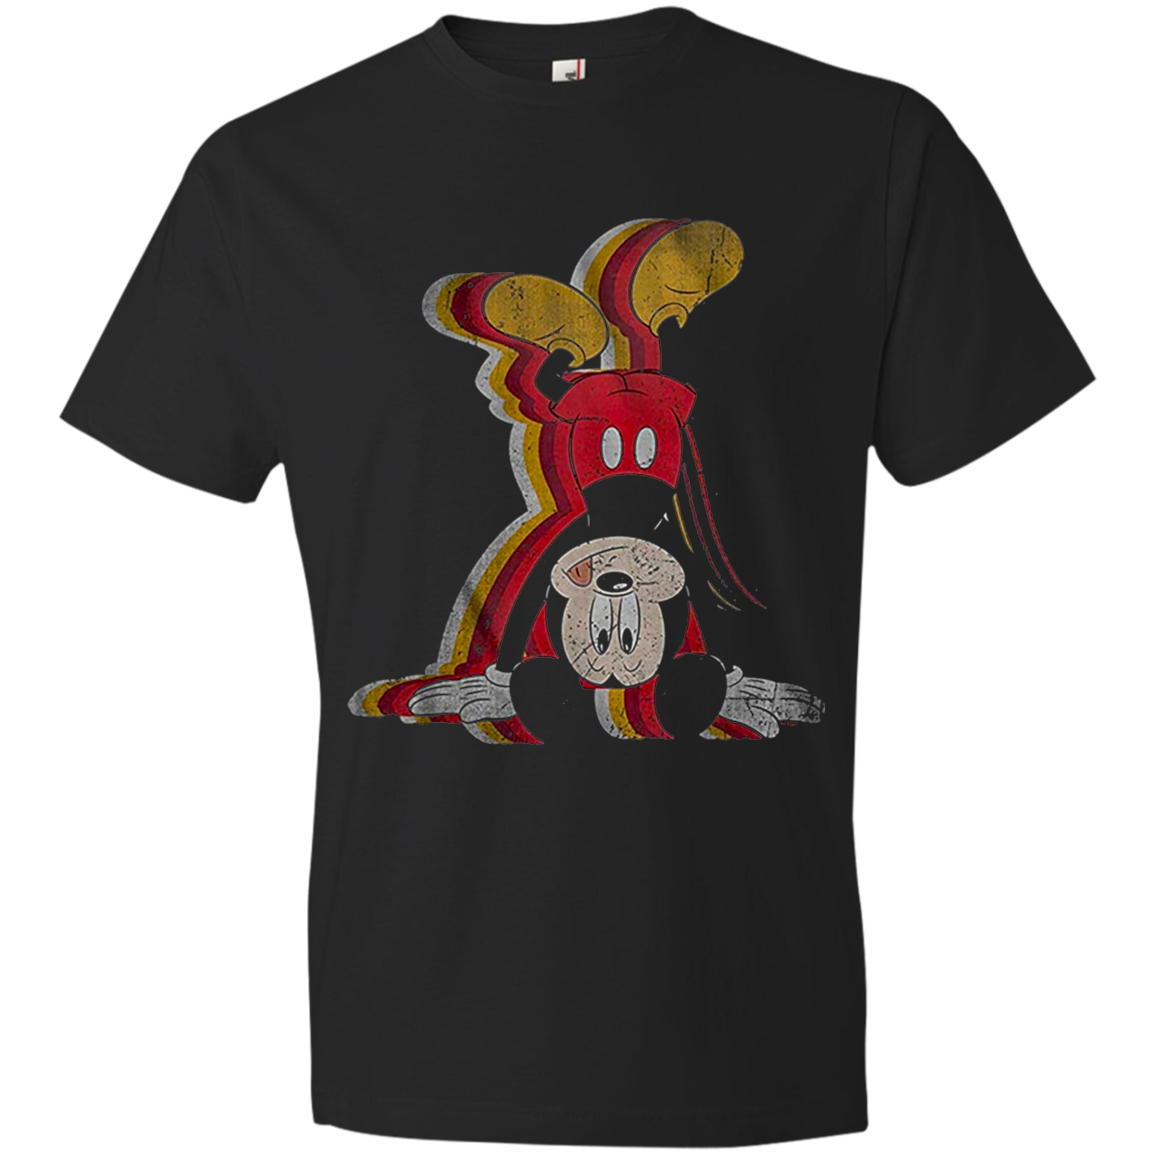 Handstand Mickey Mouse Youth/Adult